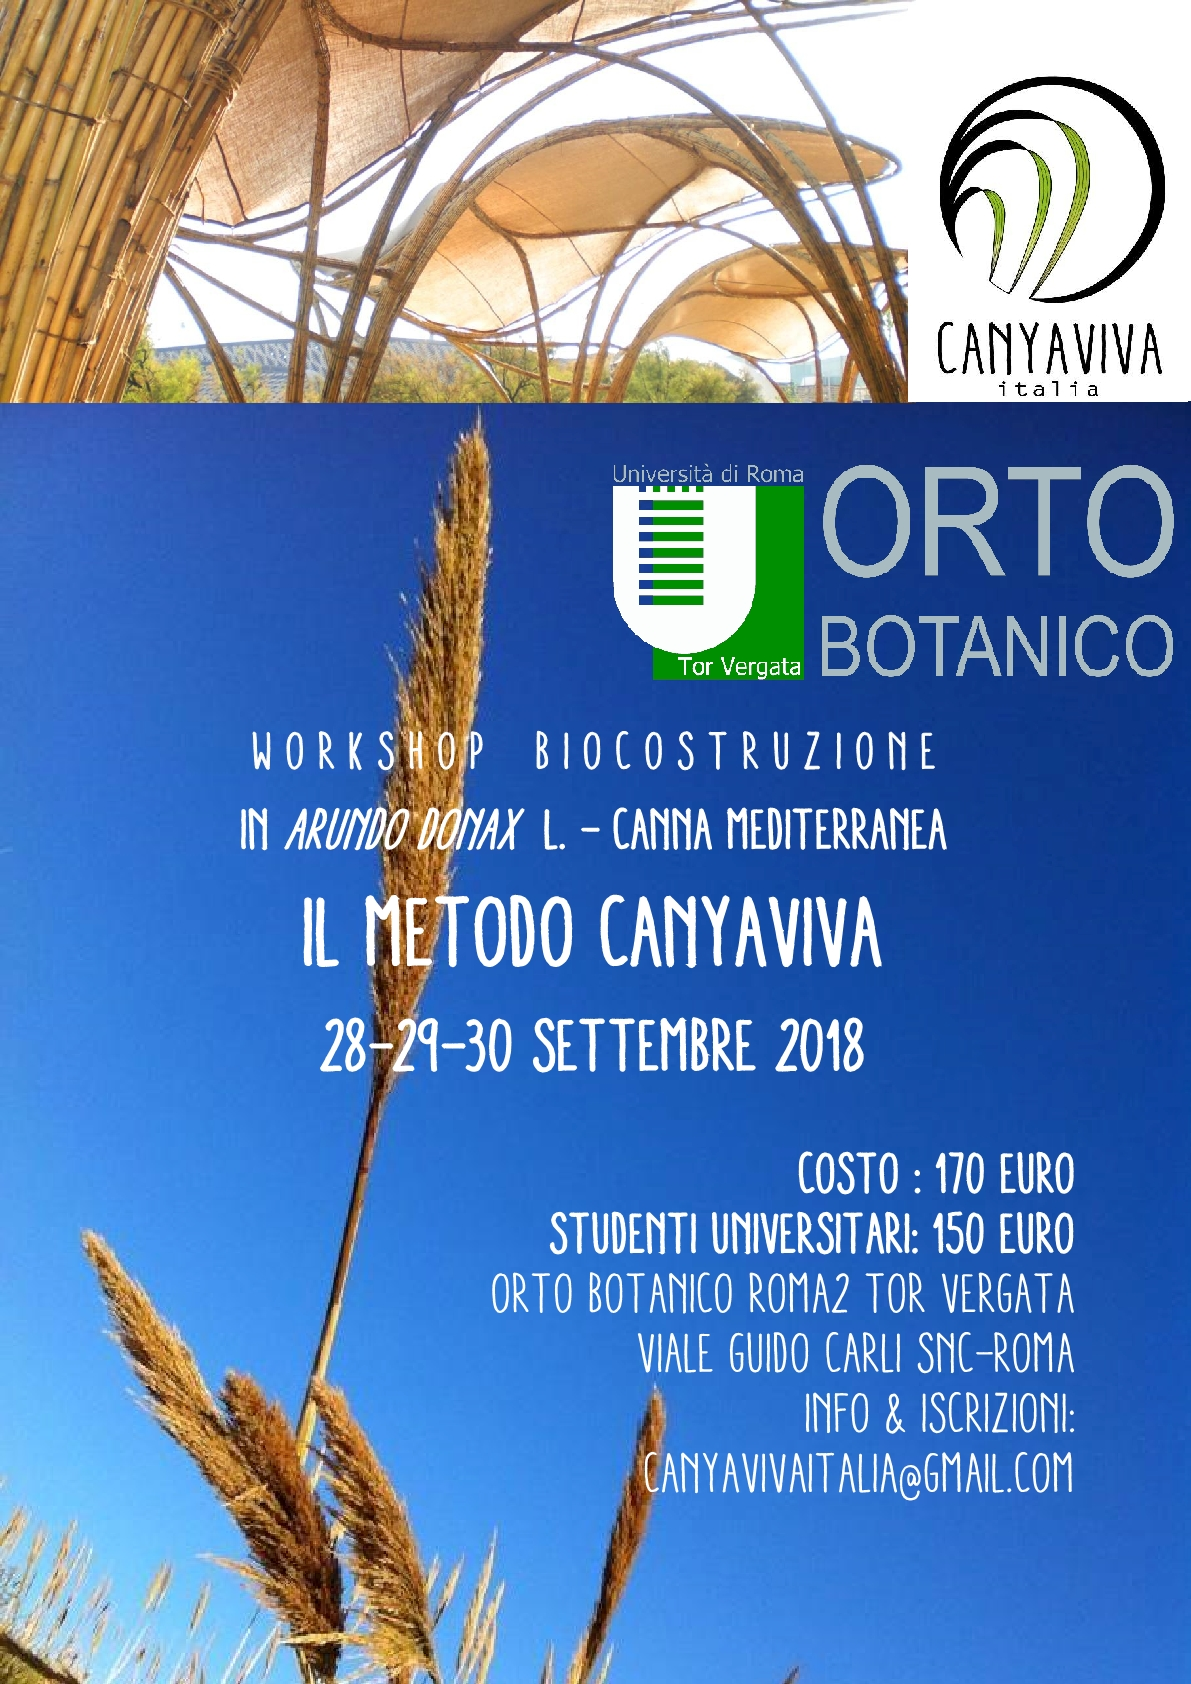 Workshop Biocostruzione in Arundo donax L.